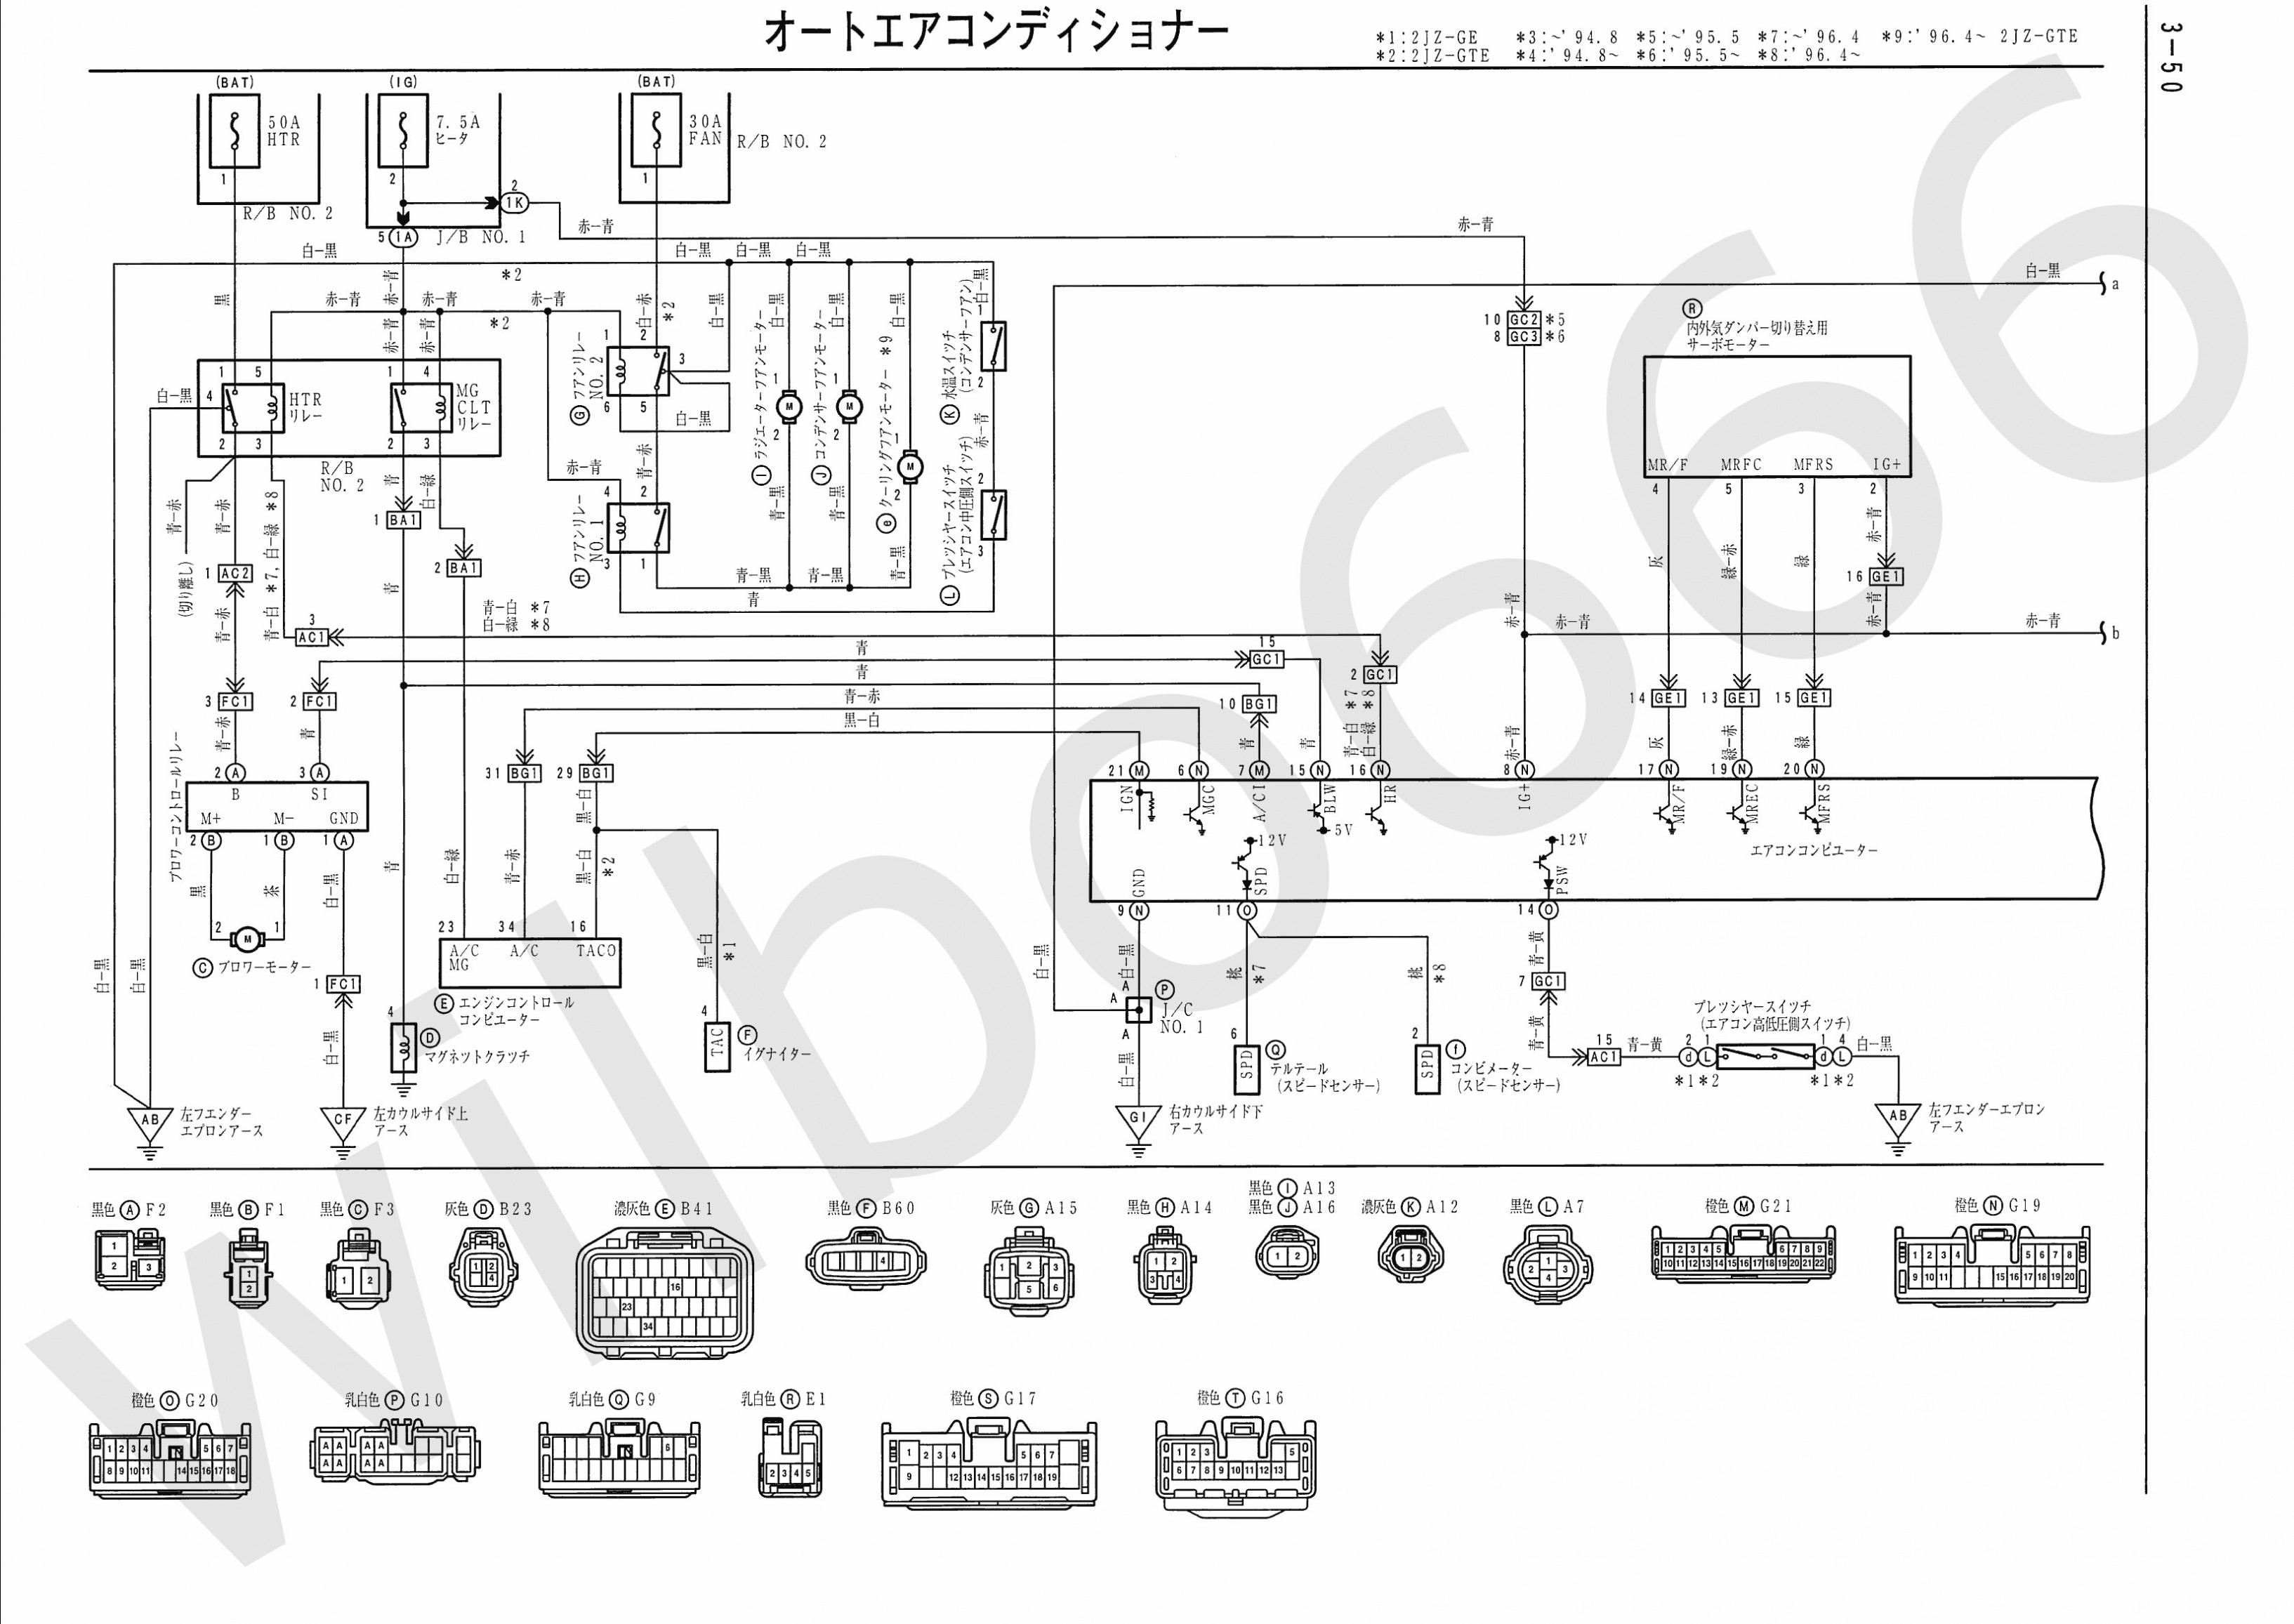 1999 Honda Accord V6 Engine Diagram 1998 Civic Engine Diagram Layout Wiring Diagrams • Of 1999 Honda Accord V6 Engine Diagram